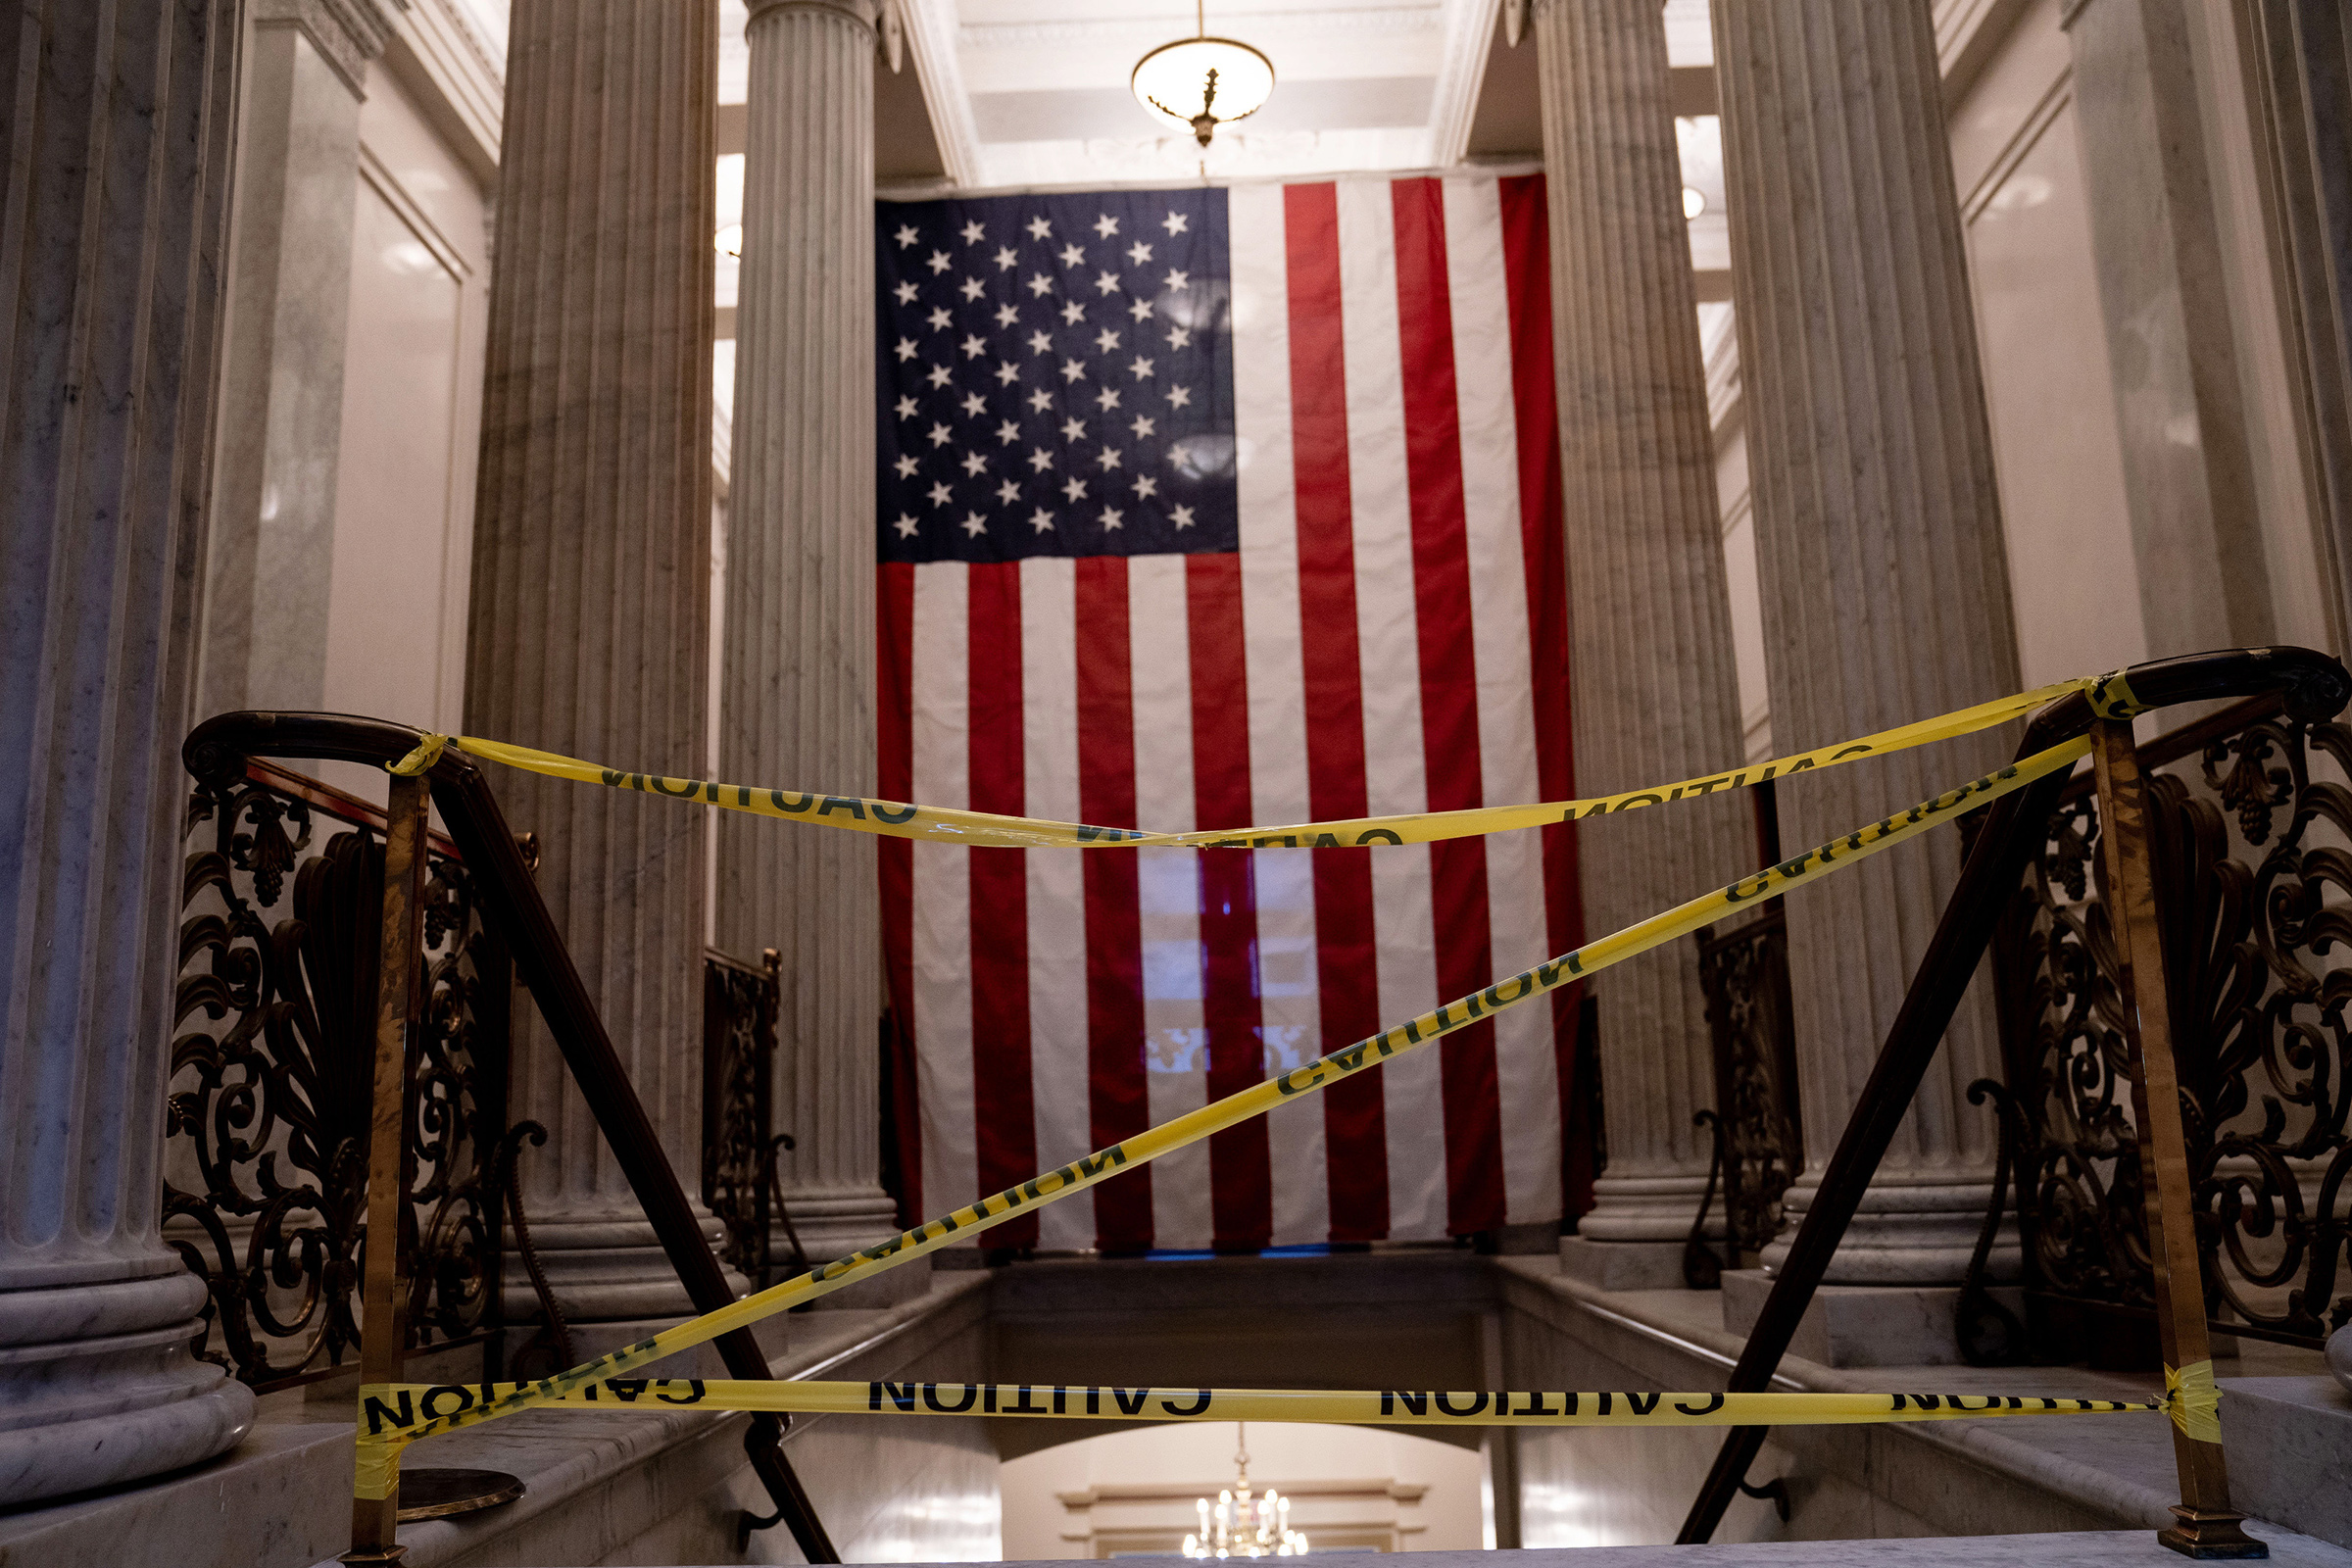 Caution tape blocks a stairwell inside the Capitol in Washington on Jan. 9